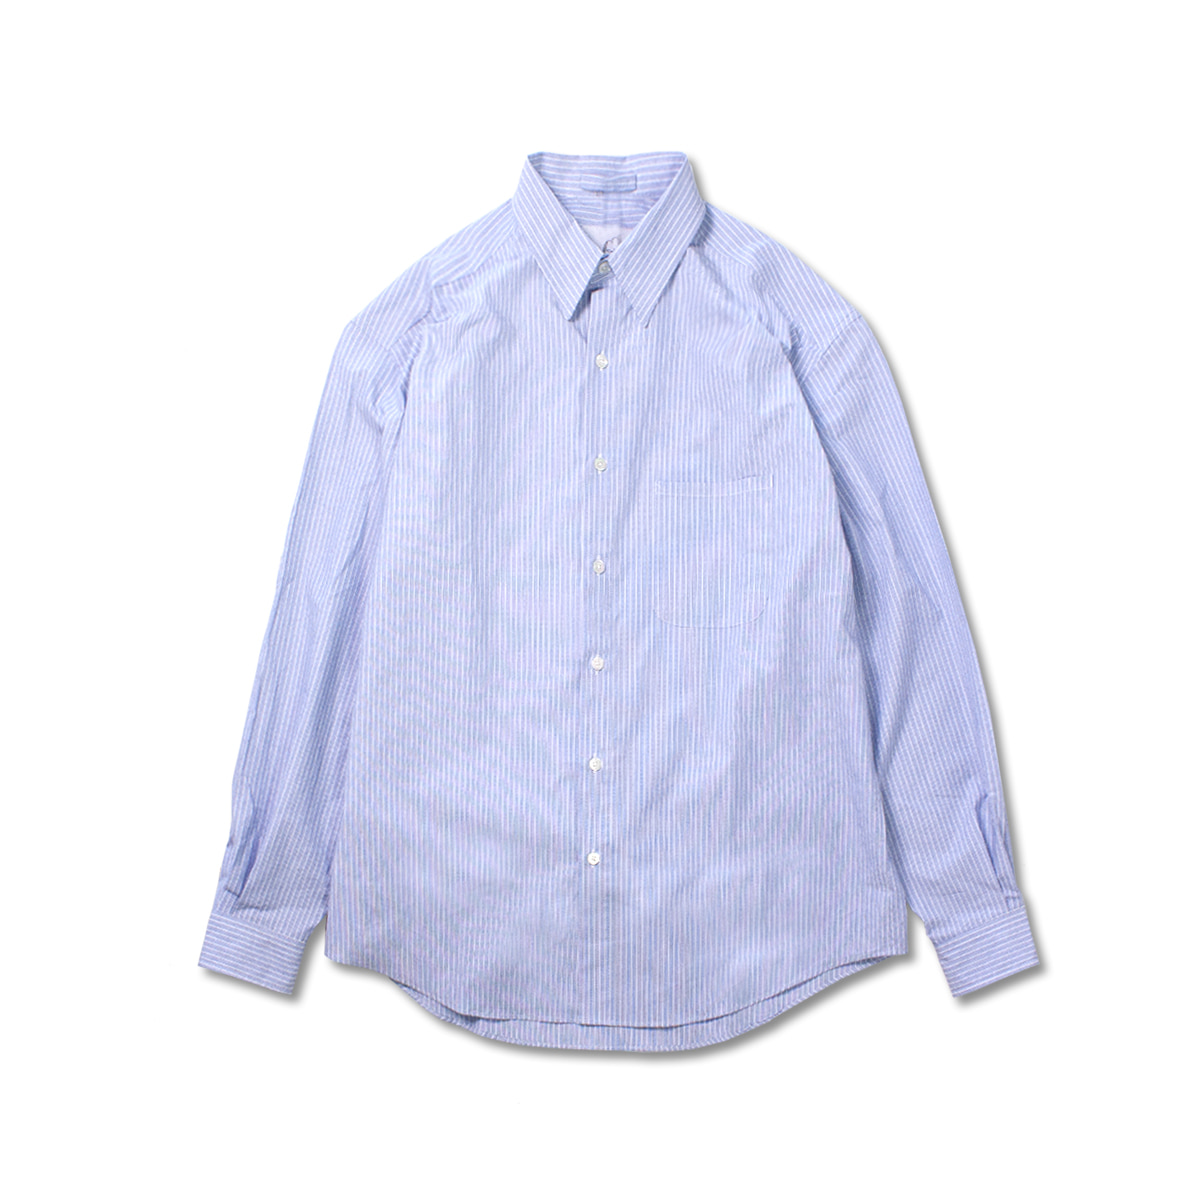 [BROWNYARD X RINOSTORE] STEADY SHIRT 'BLUE STRIPE'